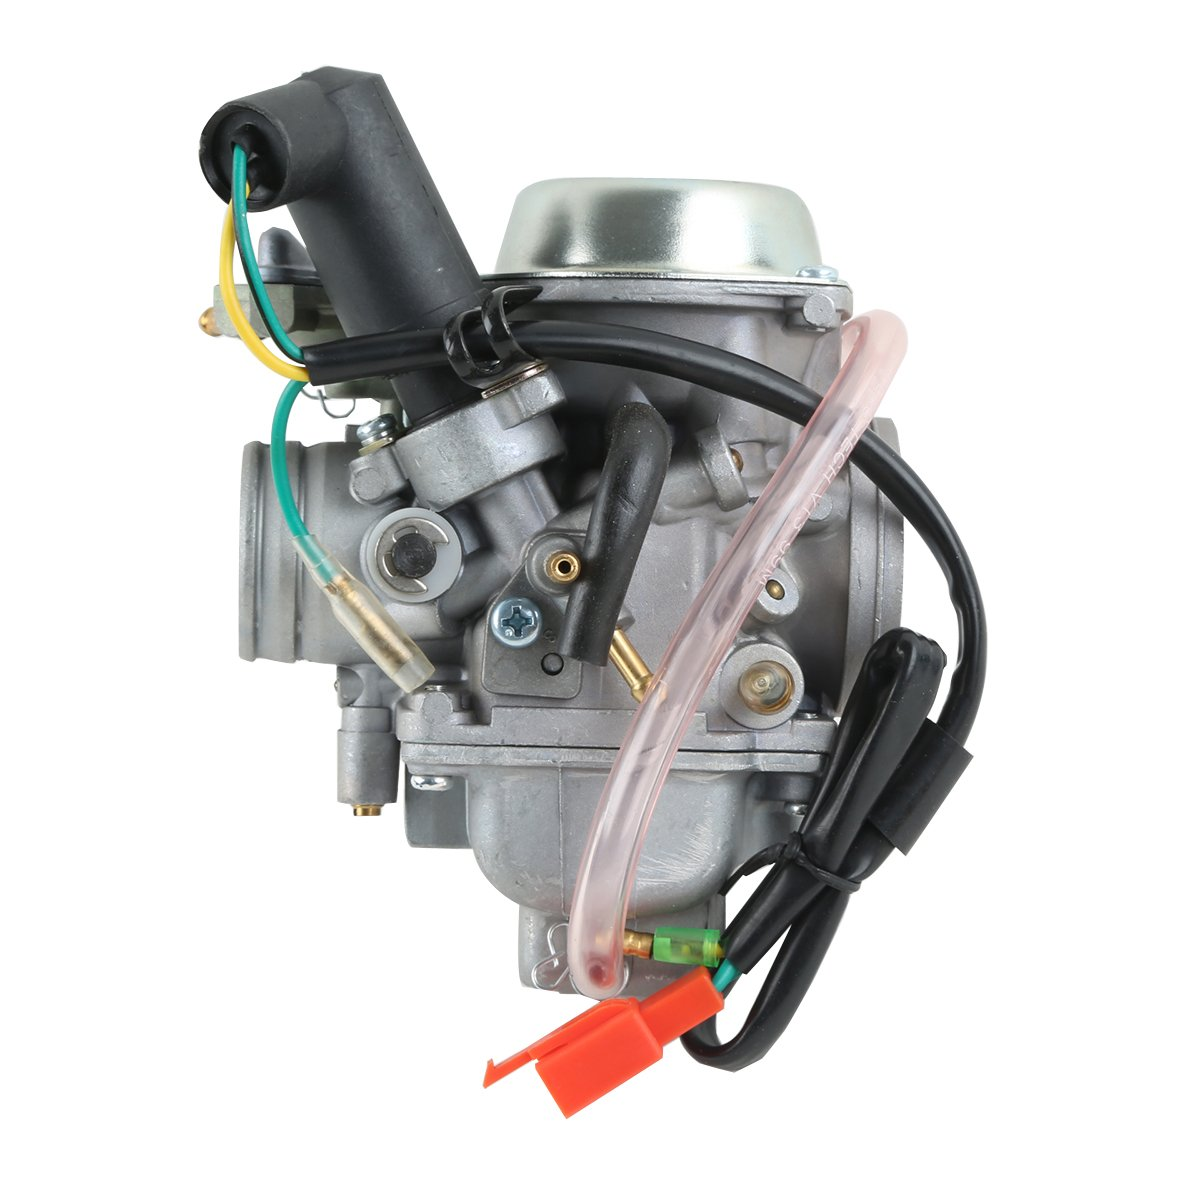 Tengchang W Electric 30mm Carburetor Carb For Cf250cc 1987 Honda Elite Wiring Motorcycle Atv Go Kart Moped Scooter Ch250 1985 1986 1988 Automotive